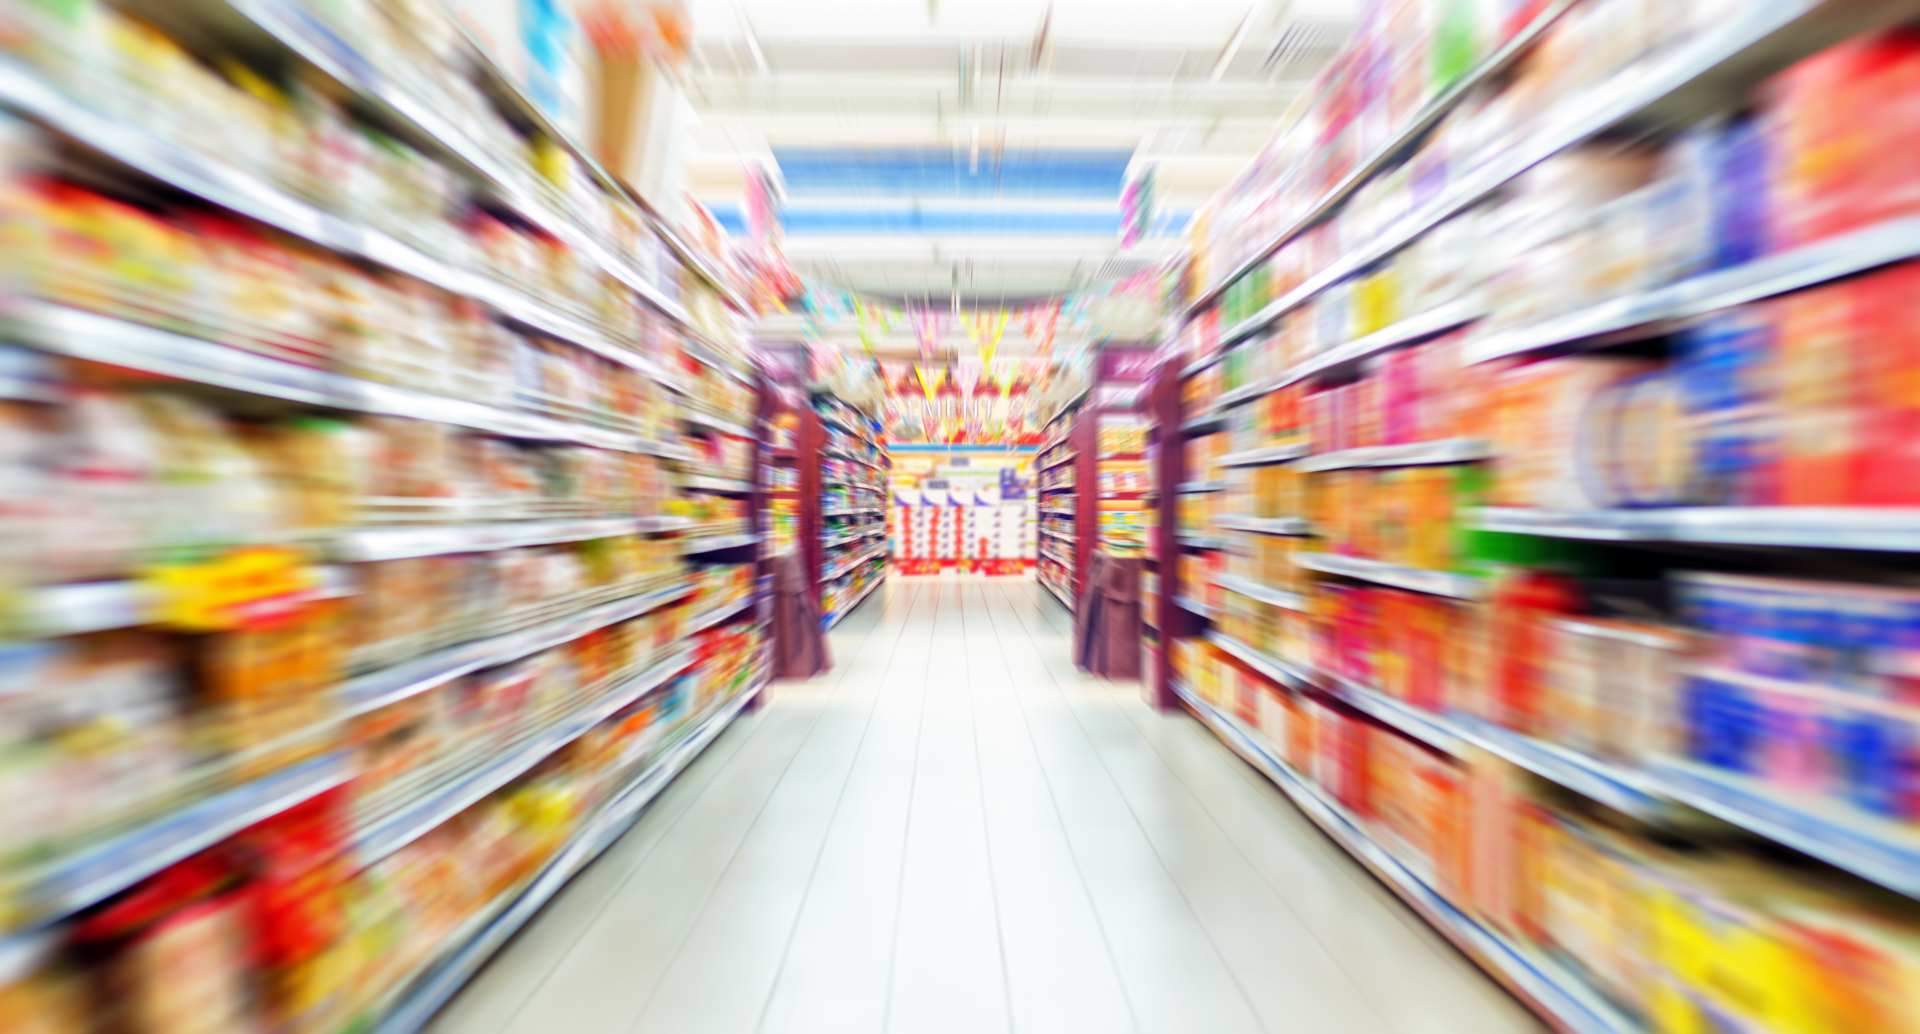 Empty supermarket aisle, Motion Blur - image courtesy of Depositphotos.